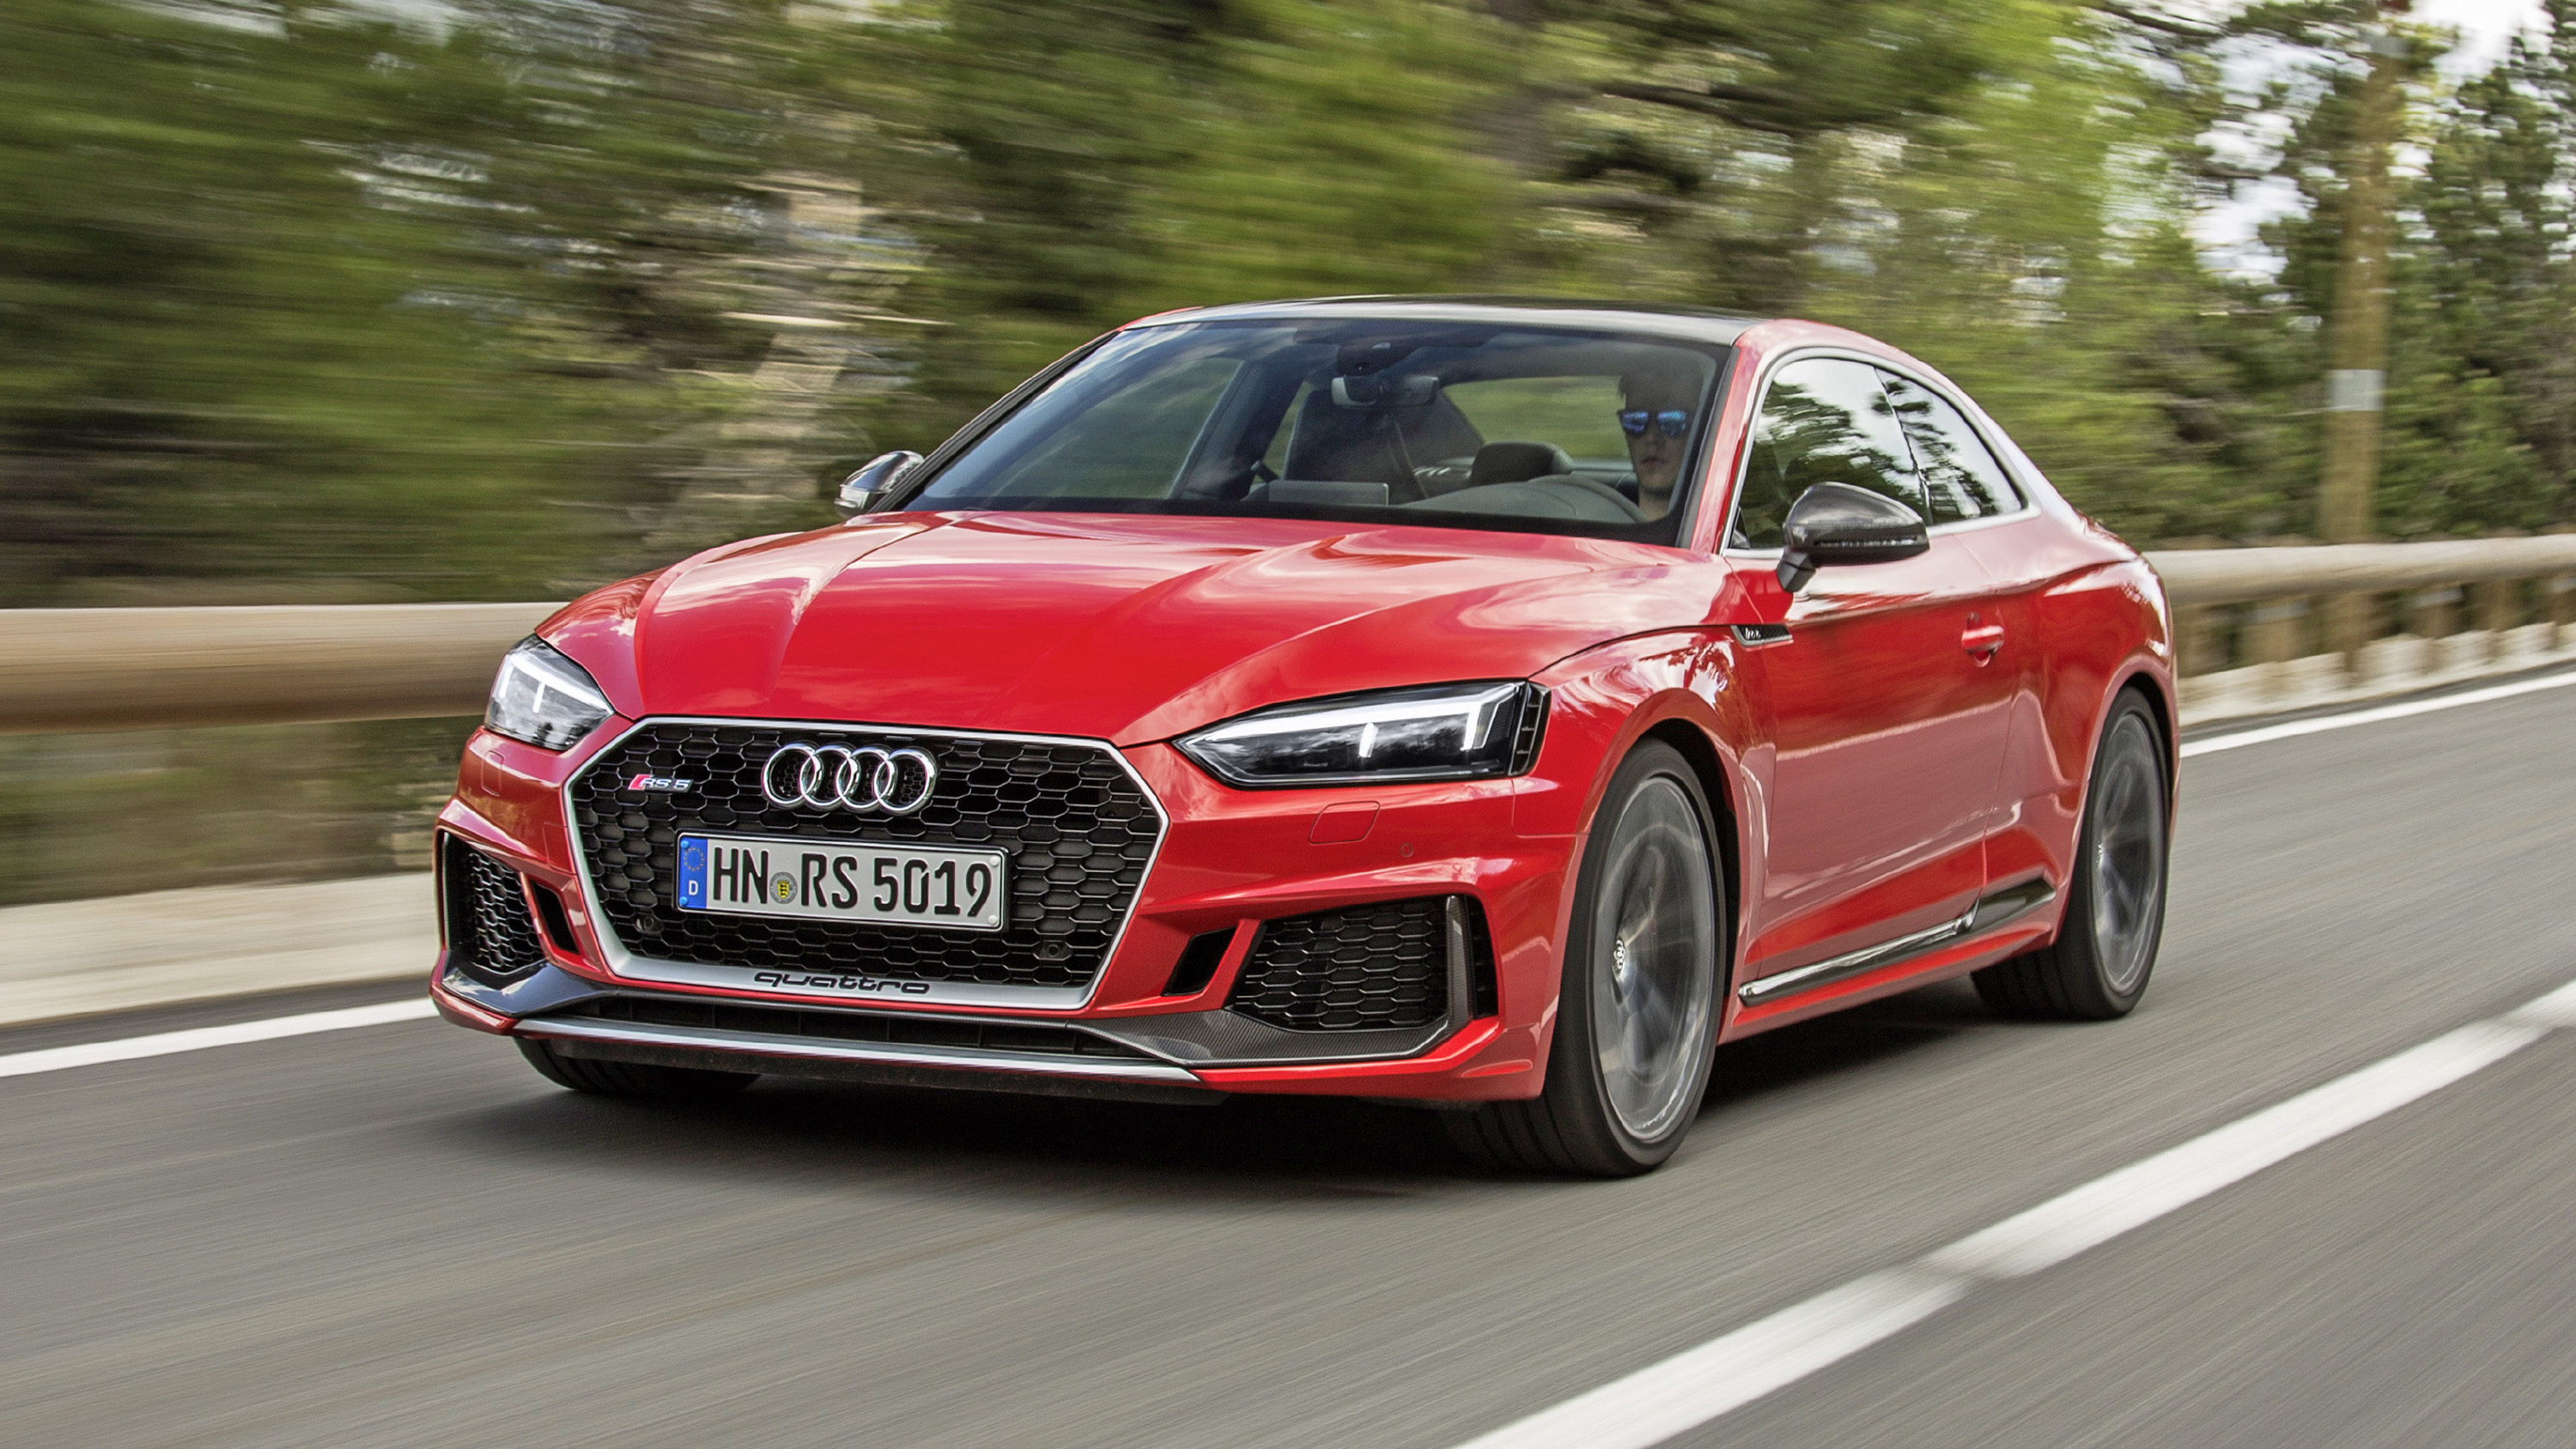 Audi Rs5 Coupe Review 444bhp Bmw M4 Rival Tested 2017 2018 Top Gear